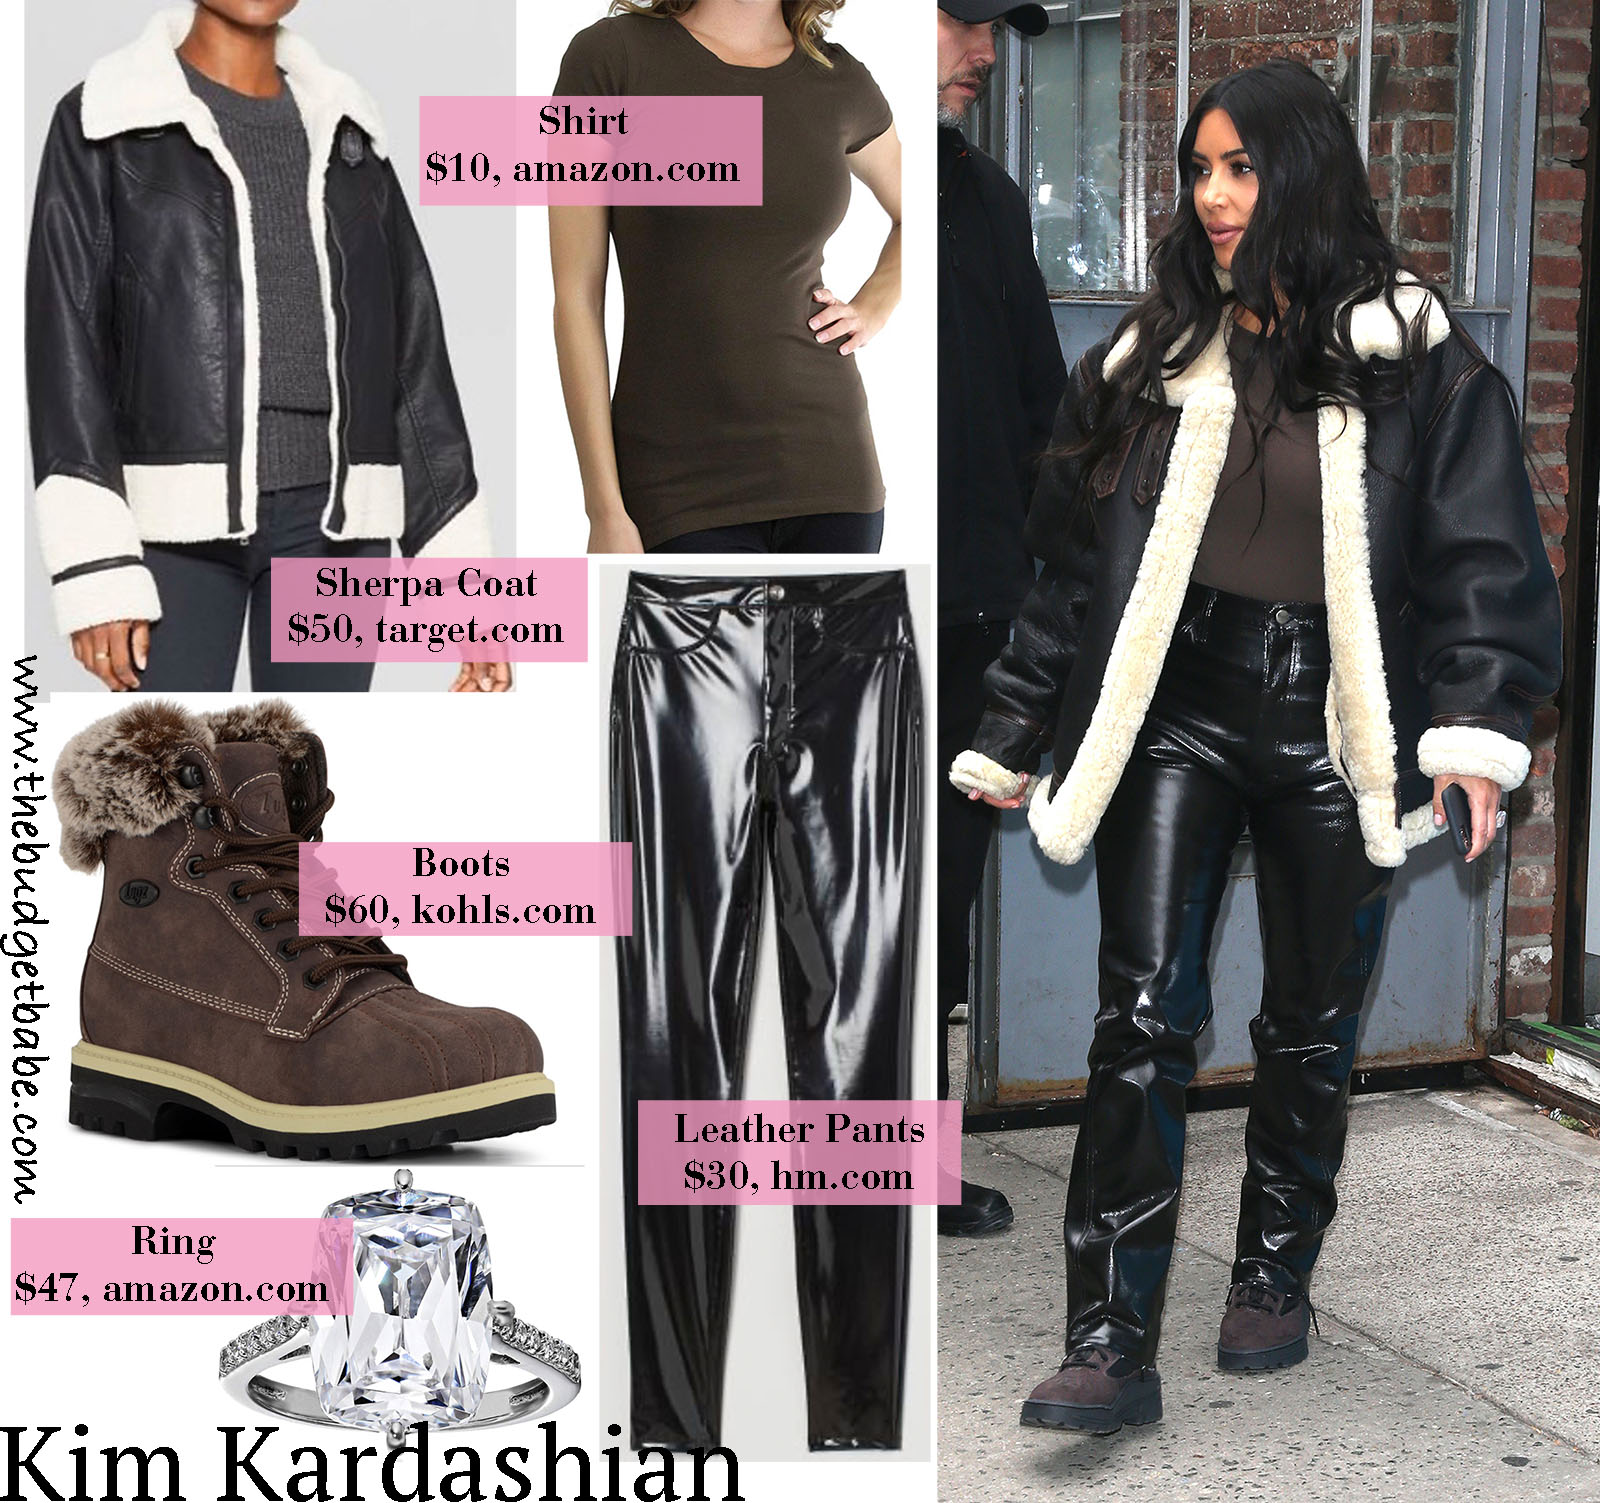 Kim Kardashian is cozy in a stylish sherpa coat!